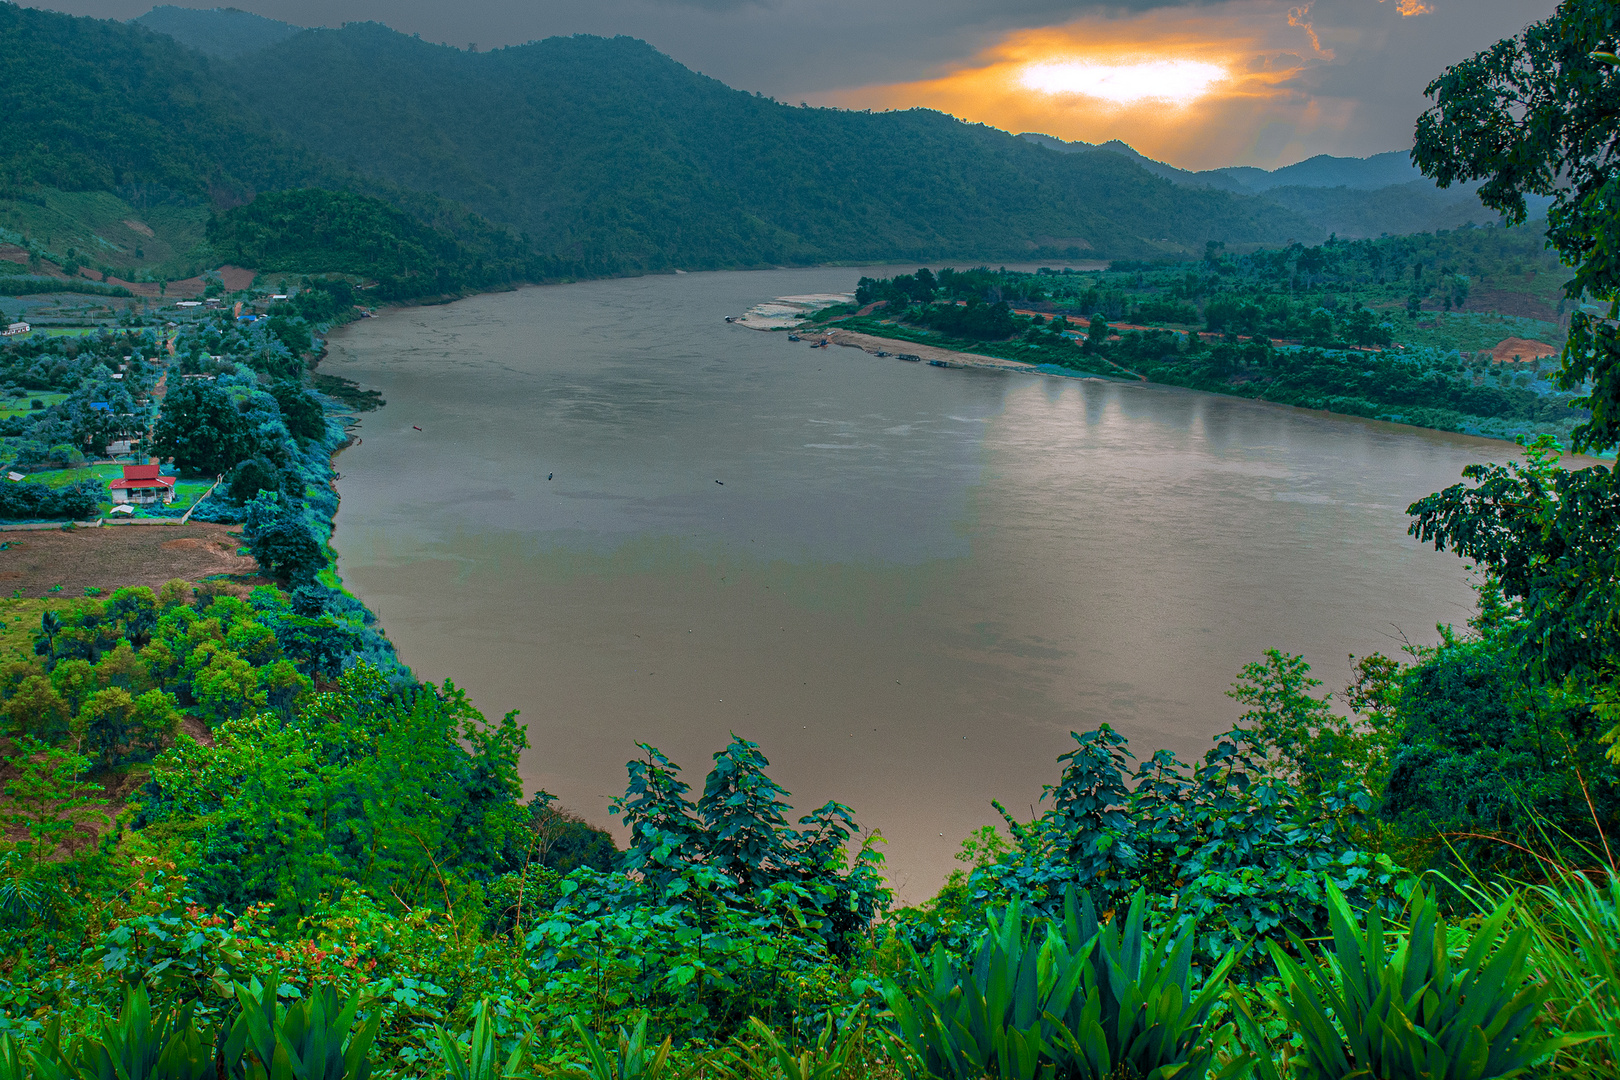 View far into Laos and the Mekong river